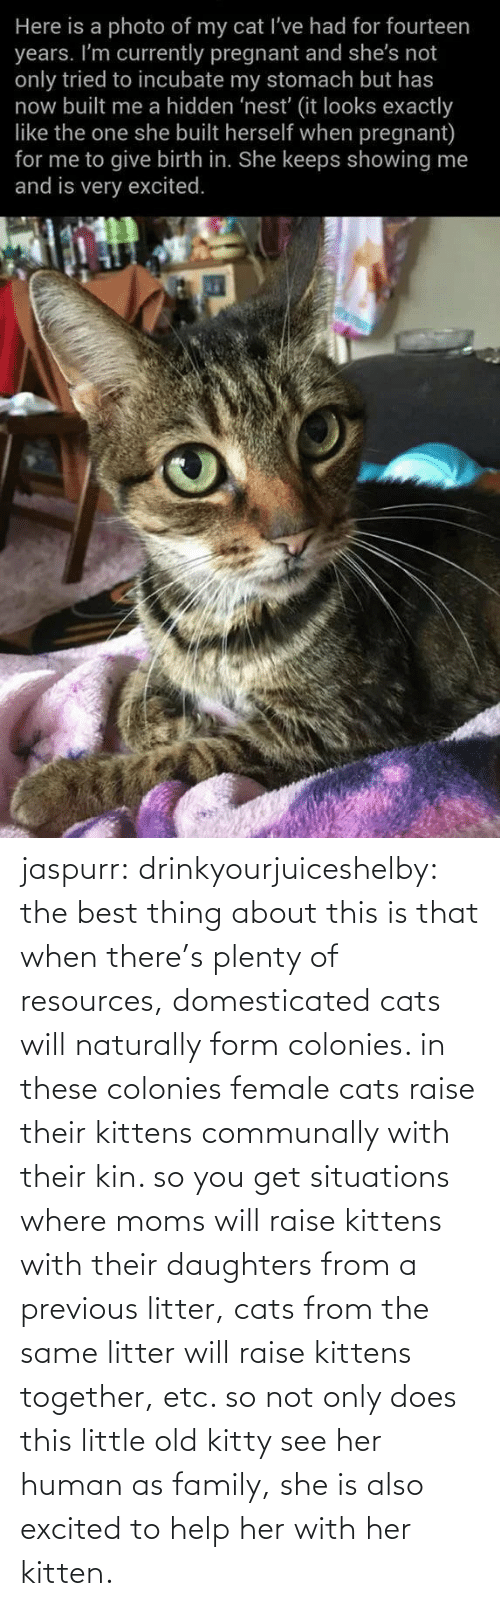 naturally: jaspurr:  drinkyourjuiceshelby:    the best thing about this is that when there's plenty of resources, domesticated cats will naturally form colonies. in these colonies female cats raise their kittens communally with their kin. so you get situations where moms will raise kittens with their daughters from a previous litter, cats from the same litter will raise kittens together, etc. so not only does this little old kitty see her human as family, she is also excited to help her with her kitten.